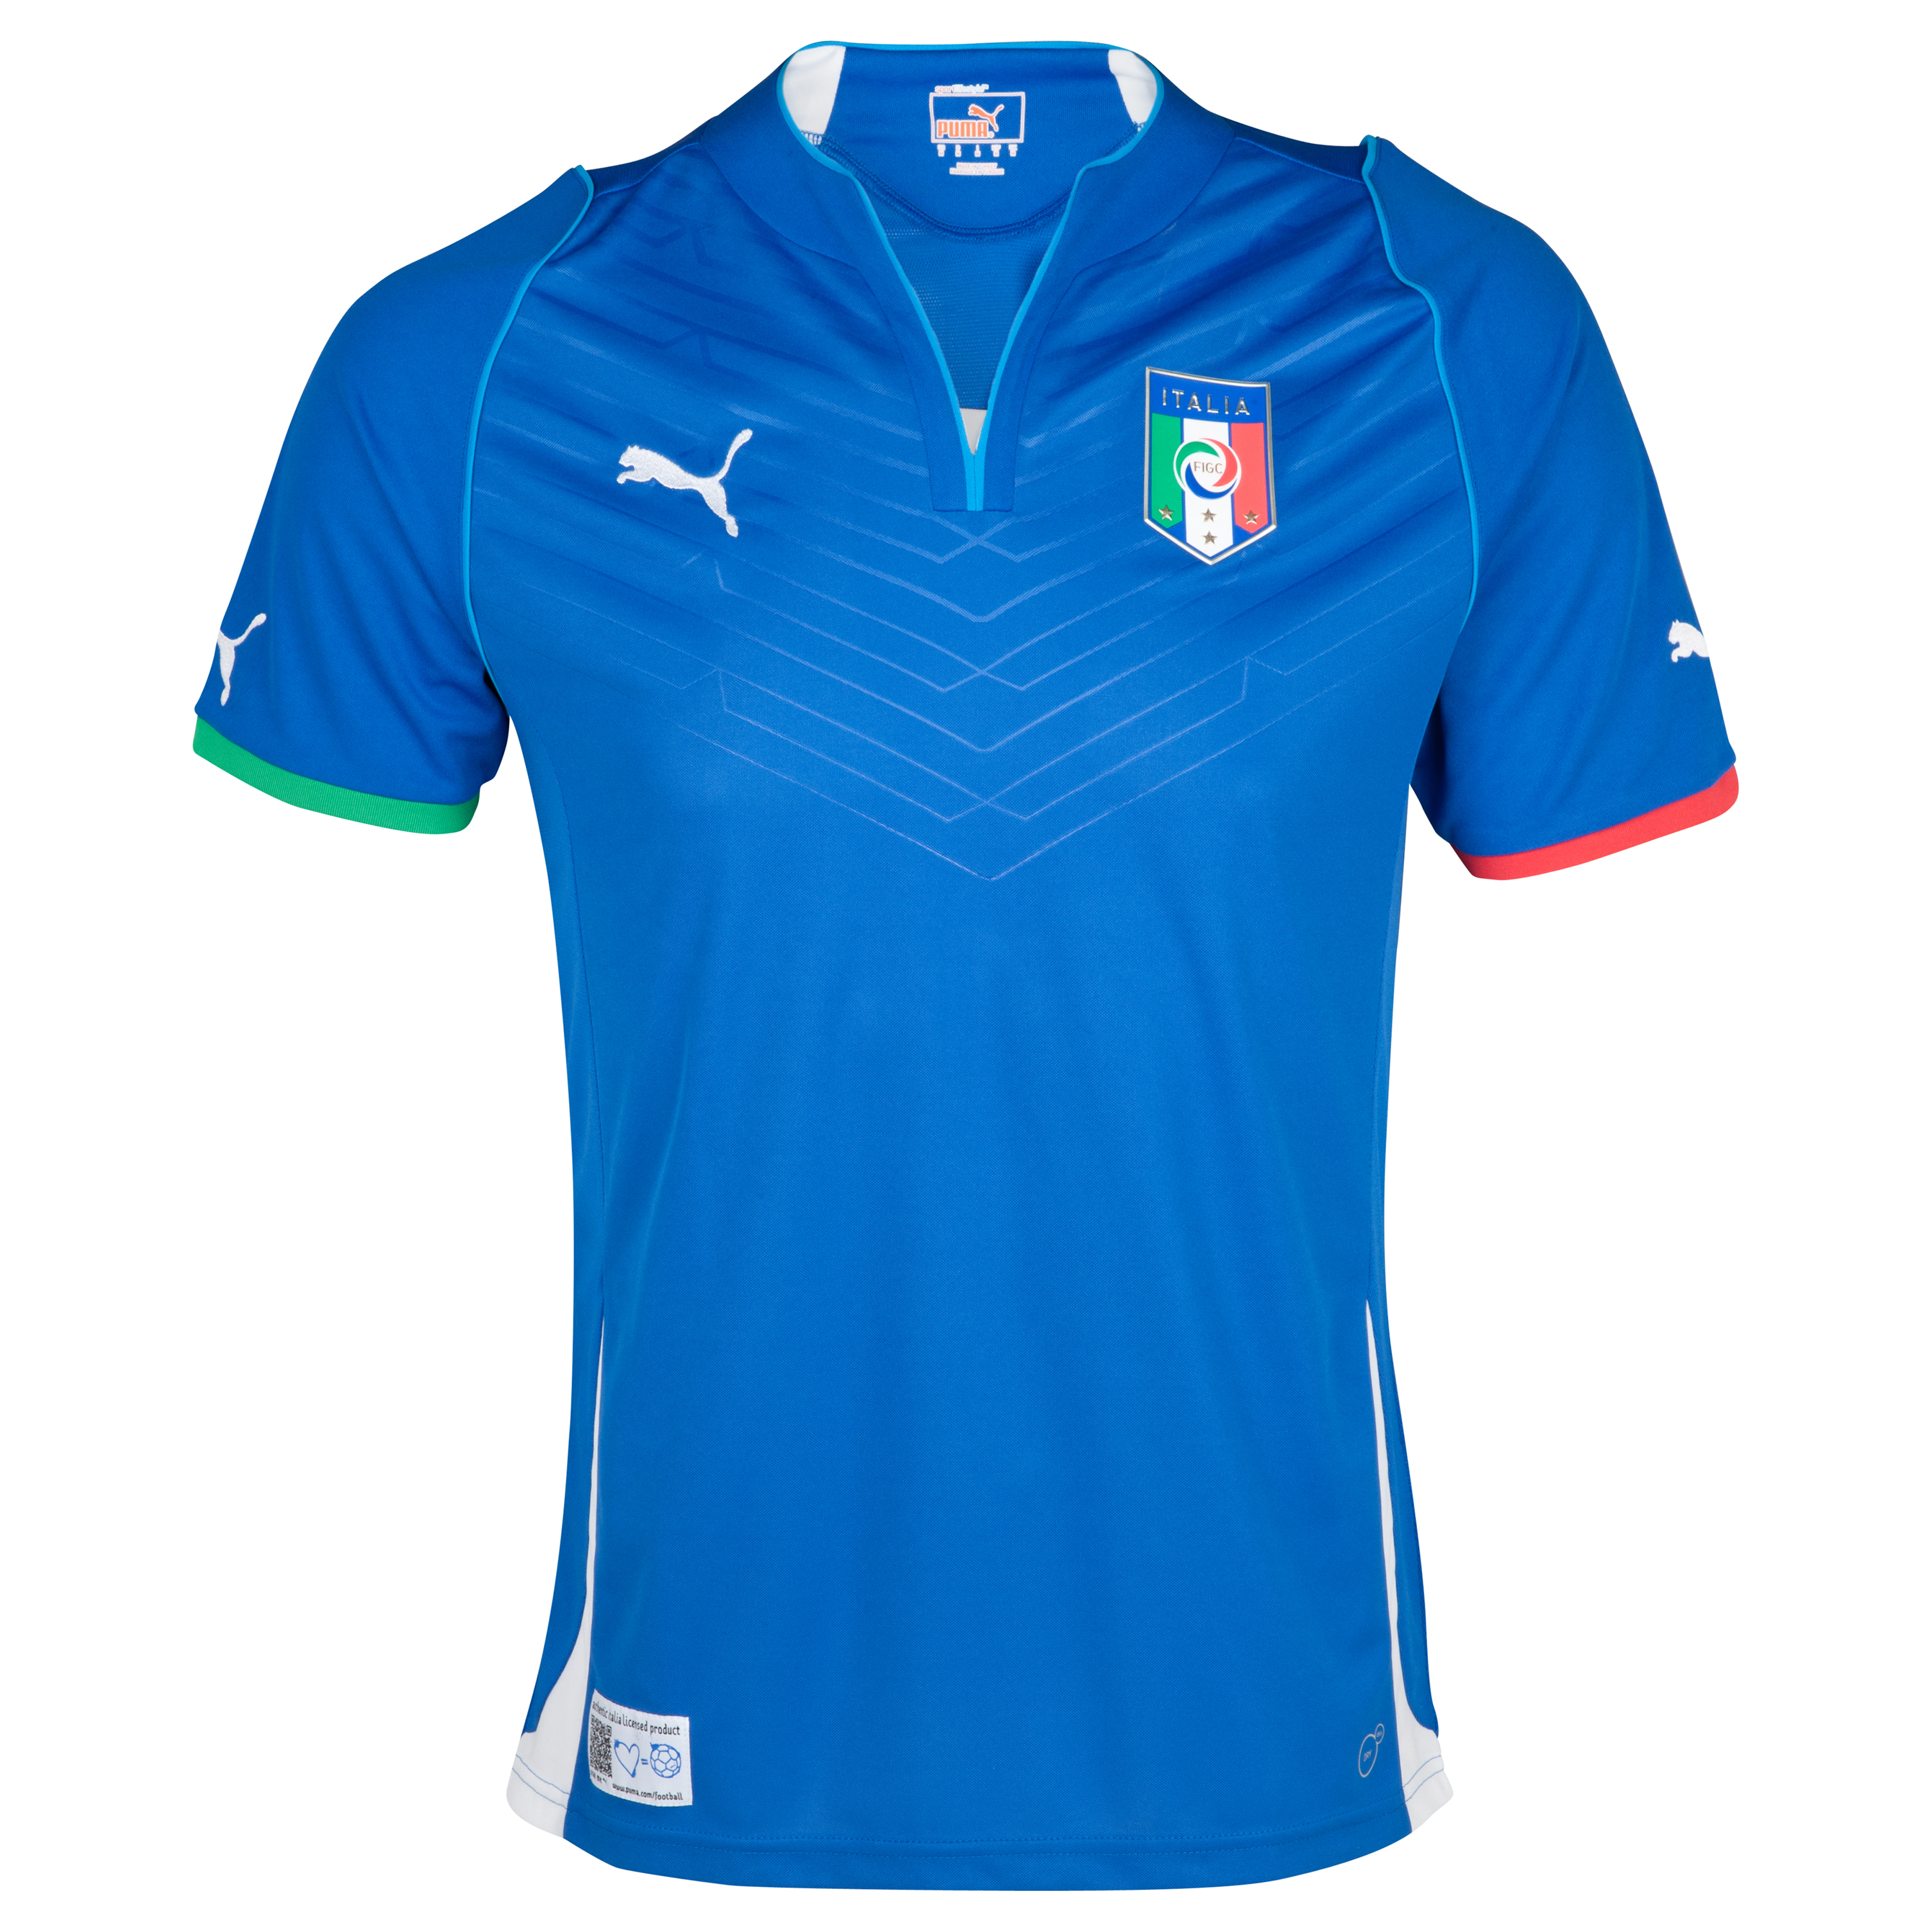 Italy Confederations Cup Home Shirt 2013 - Youths